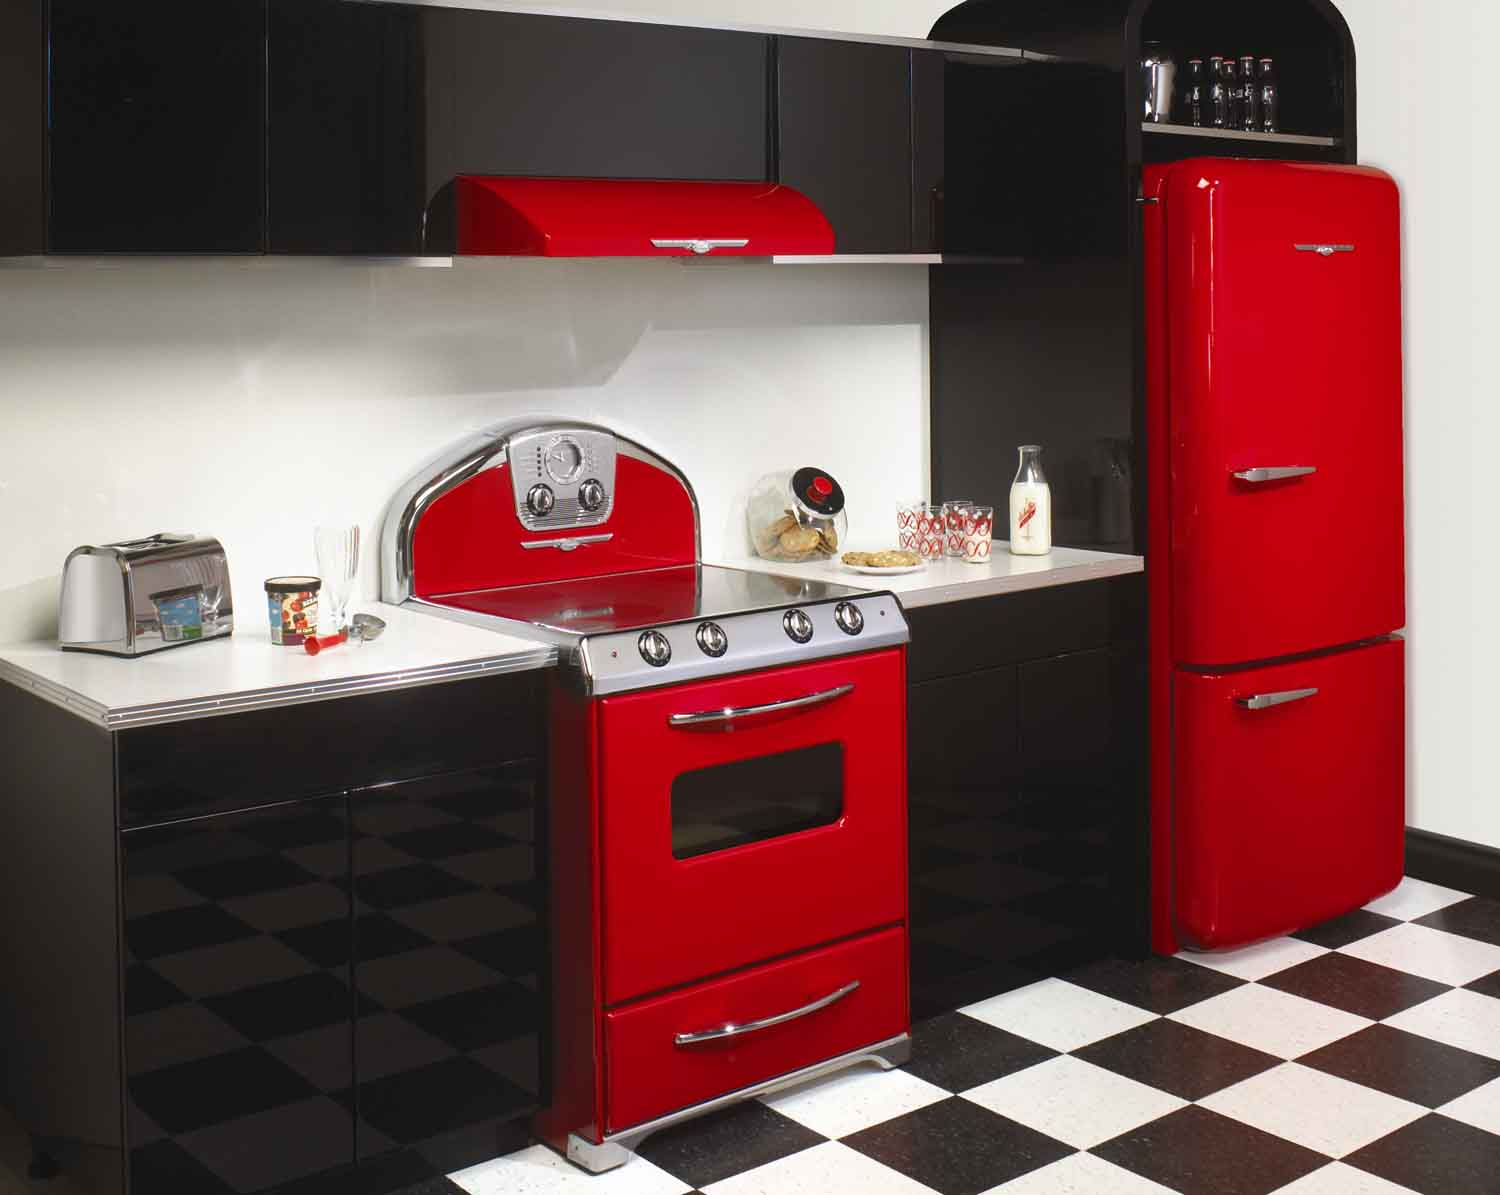 Antique Kitchen Appliances Designers Nj Kitchens From The 1950s Interior Decorating